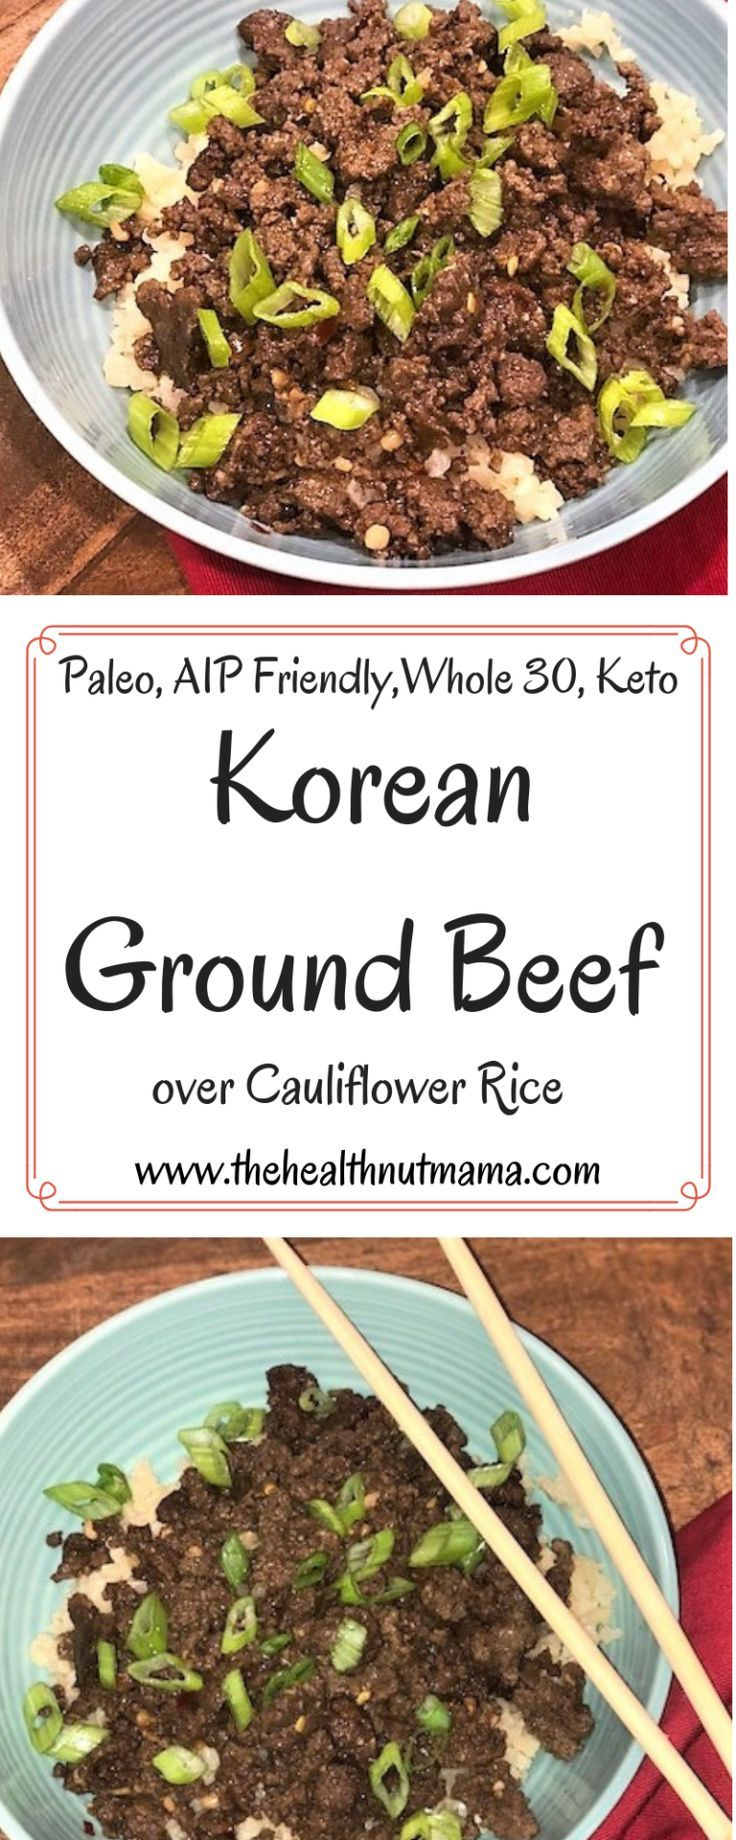 Paleo Korean Ground Beef over Cauliflower Rice - The Health Nut Mama - Food - #Beef #Cauliflower #Food #Ground #Health #Korean #Mama #nut #Paleo #Rice #groundbeefrecipes